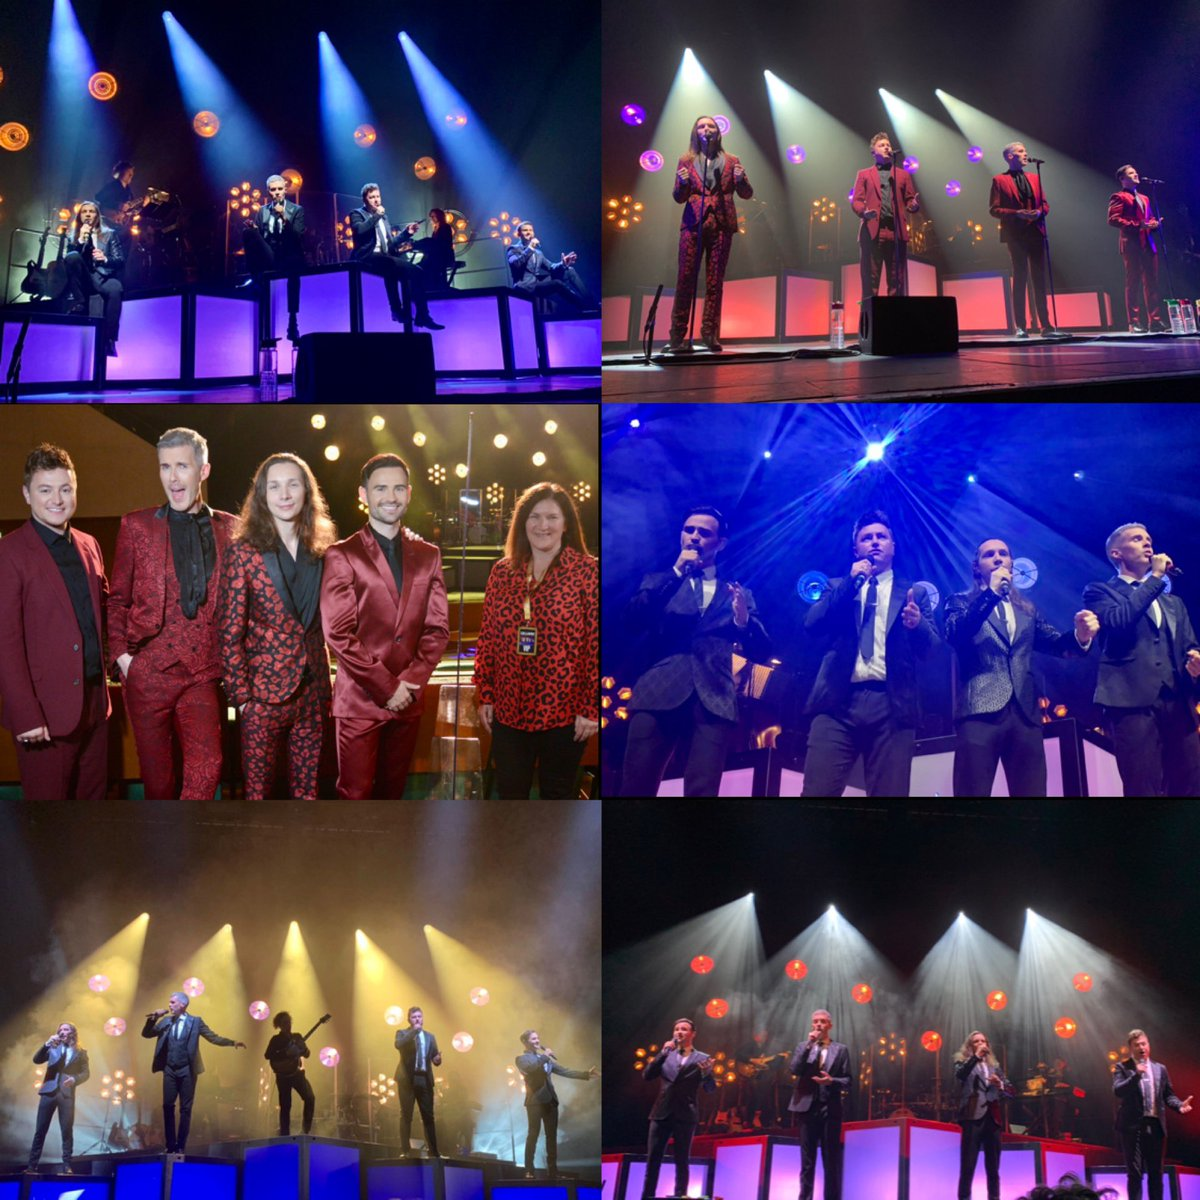 Well @Collabro - that was Week One!!!! Such an amazing show with THE perfect set list. You guys sound incredible and it's soo good to be back in my happy place 🥰 I'm loving every second of your Greatest Hits tour and I can't wait to do it again 🤩 #CollabroTour ❤️❤️❤️❤️